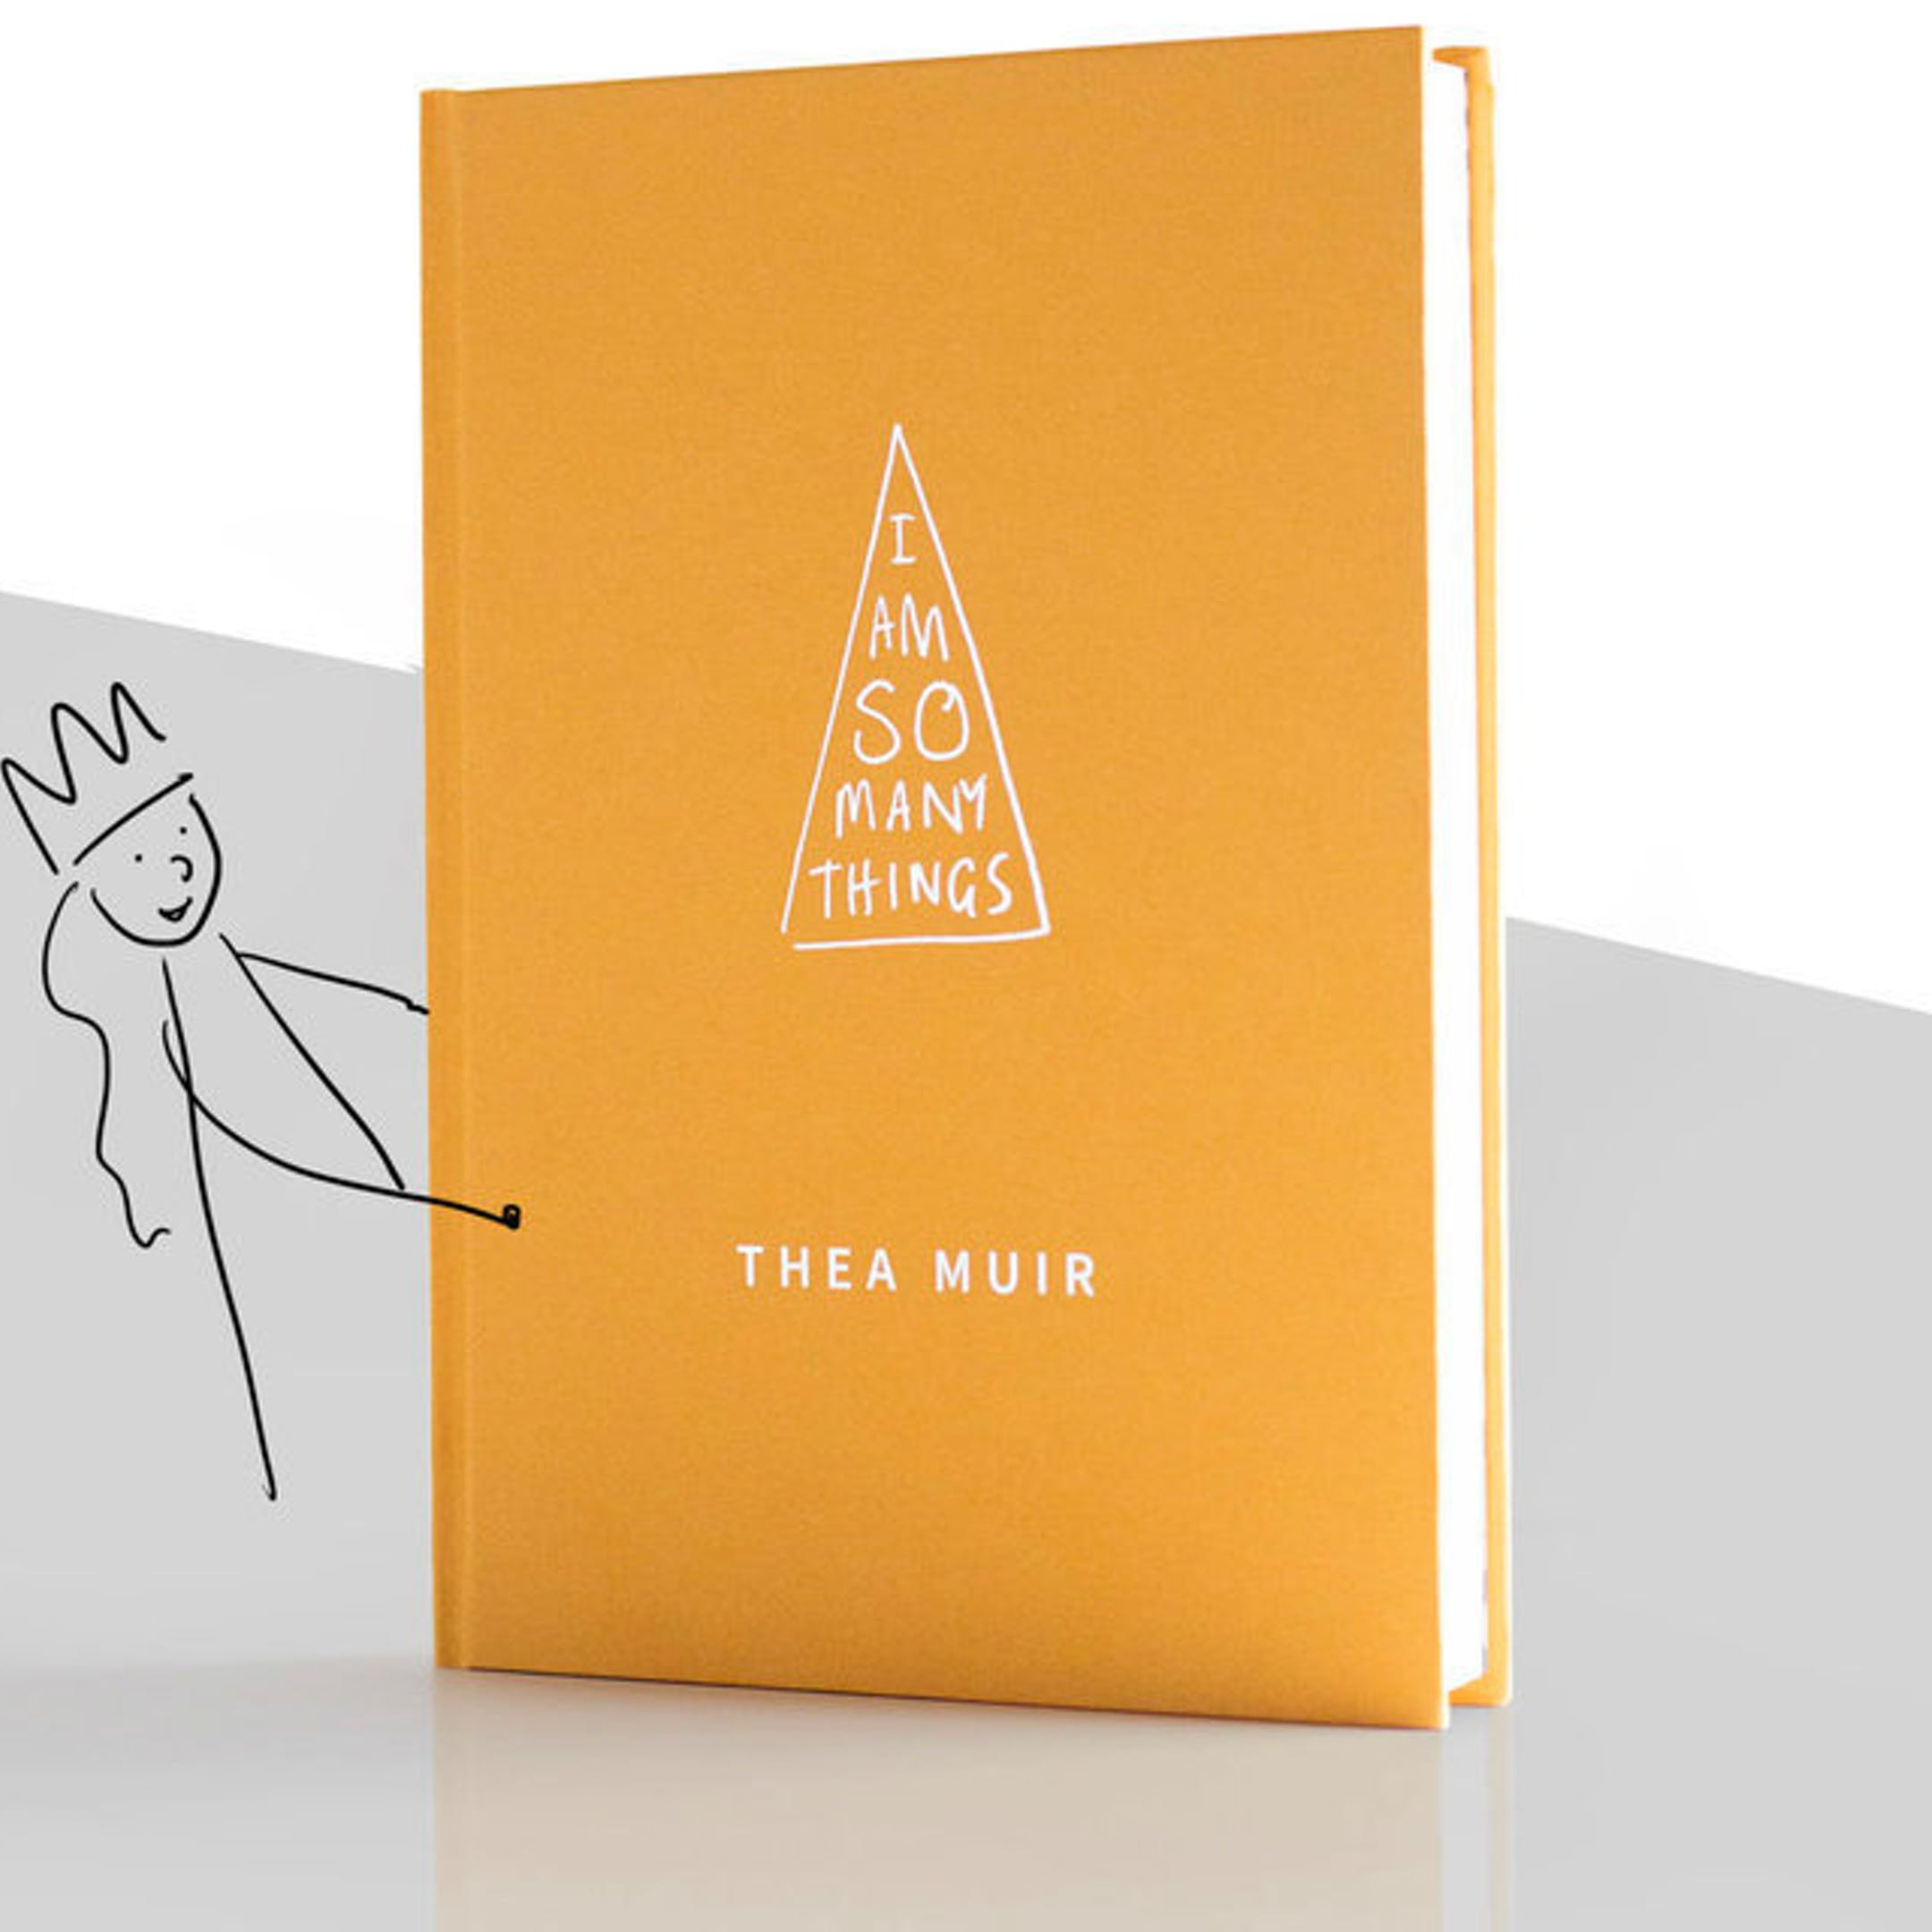 I am so many things girls book - Thea Muir